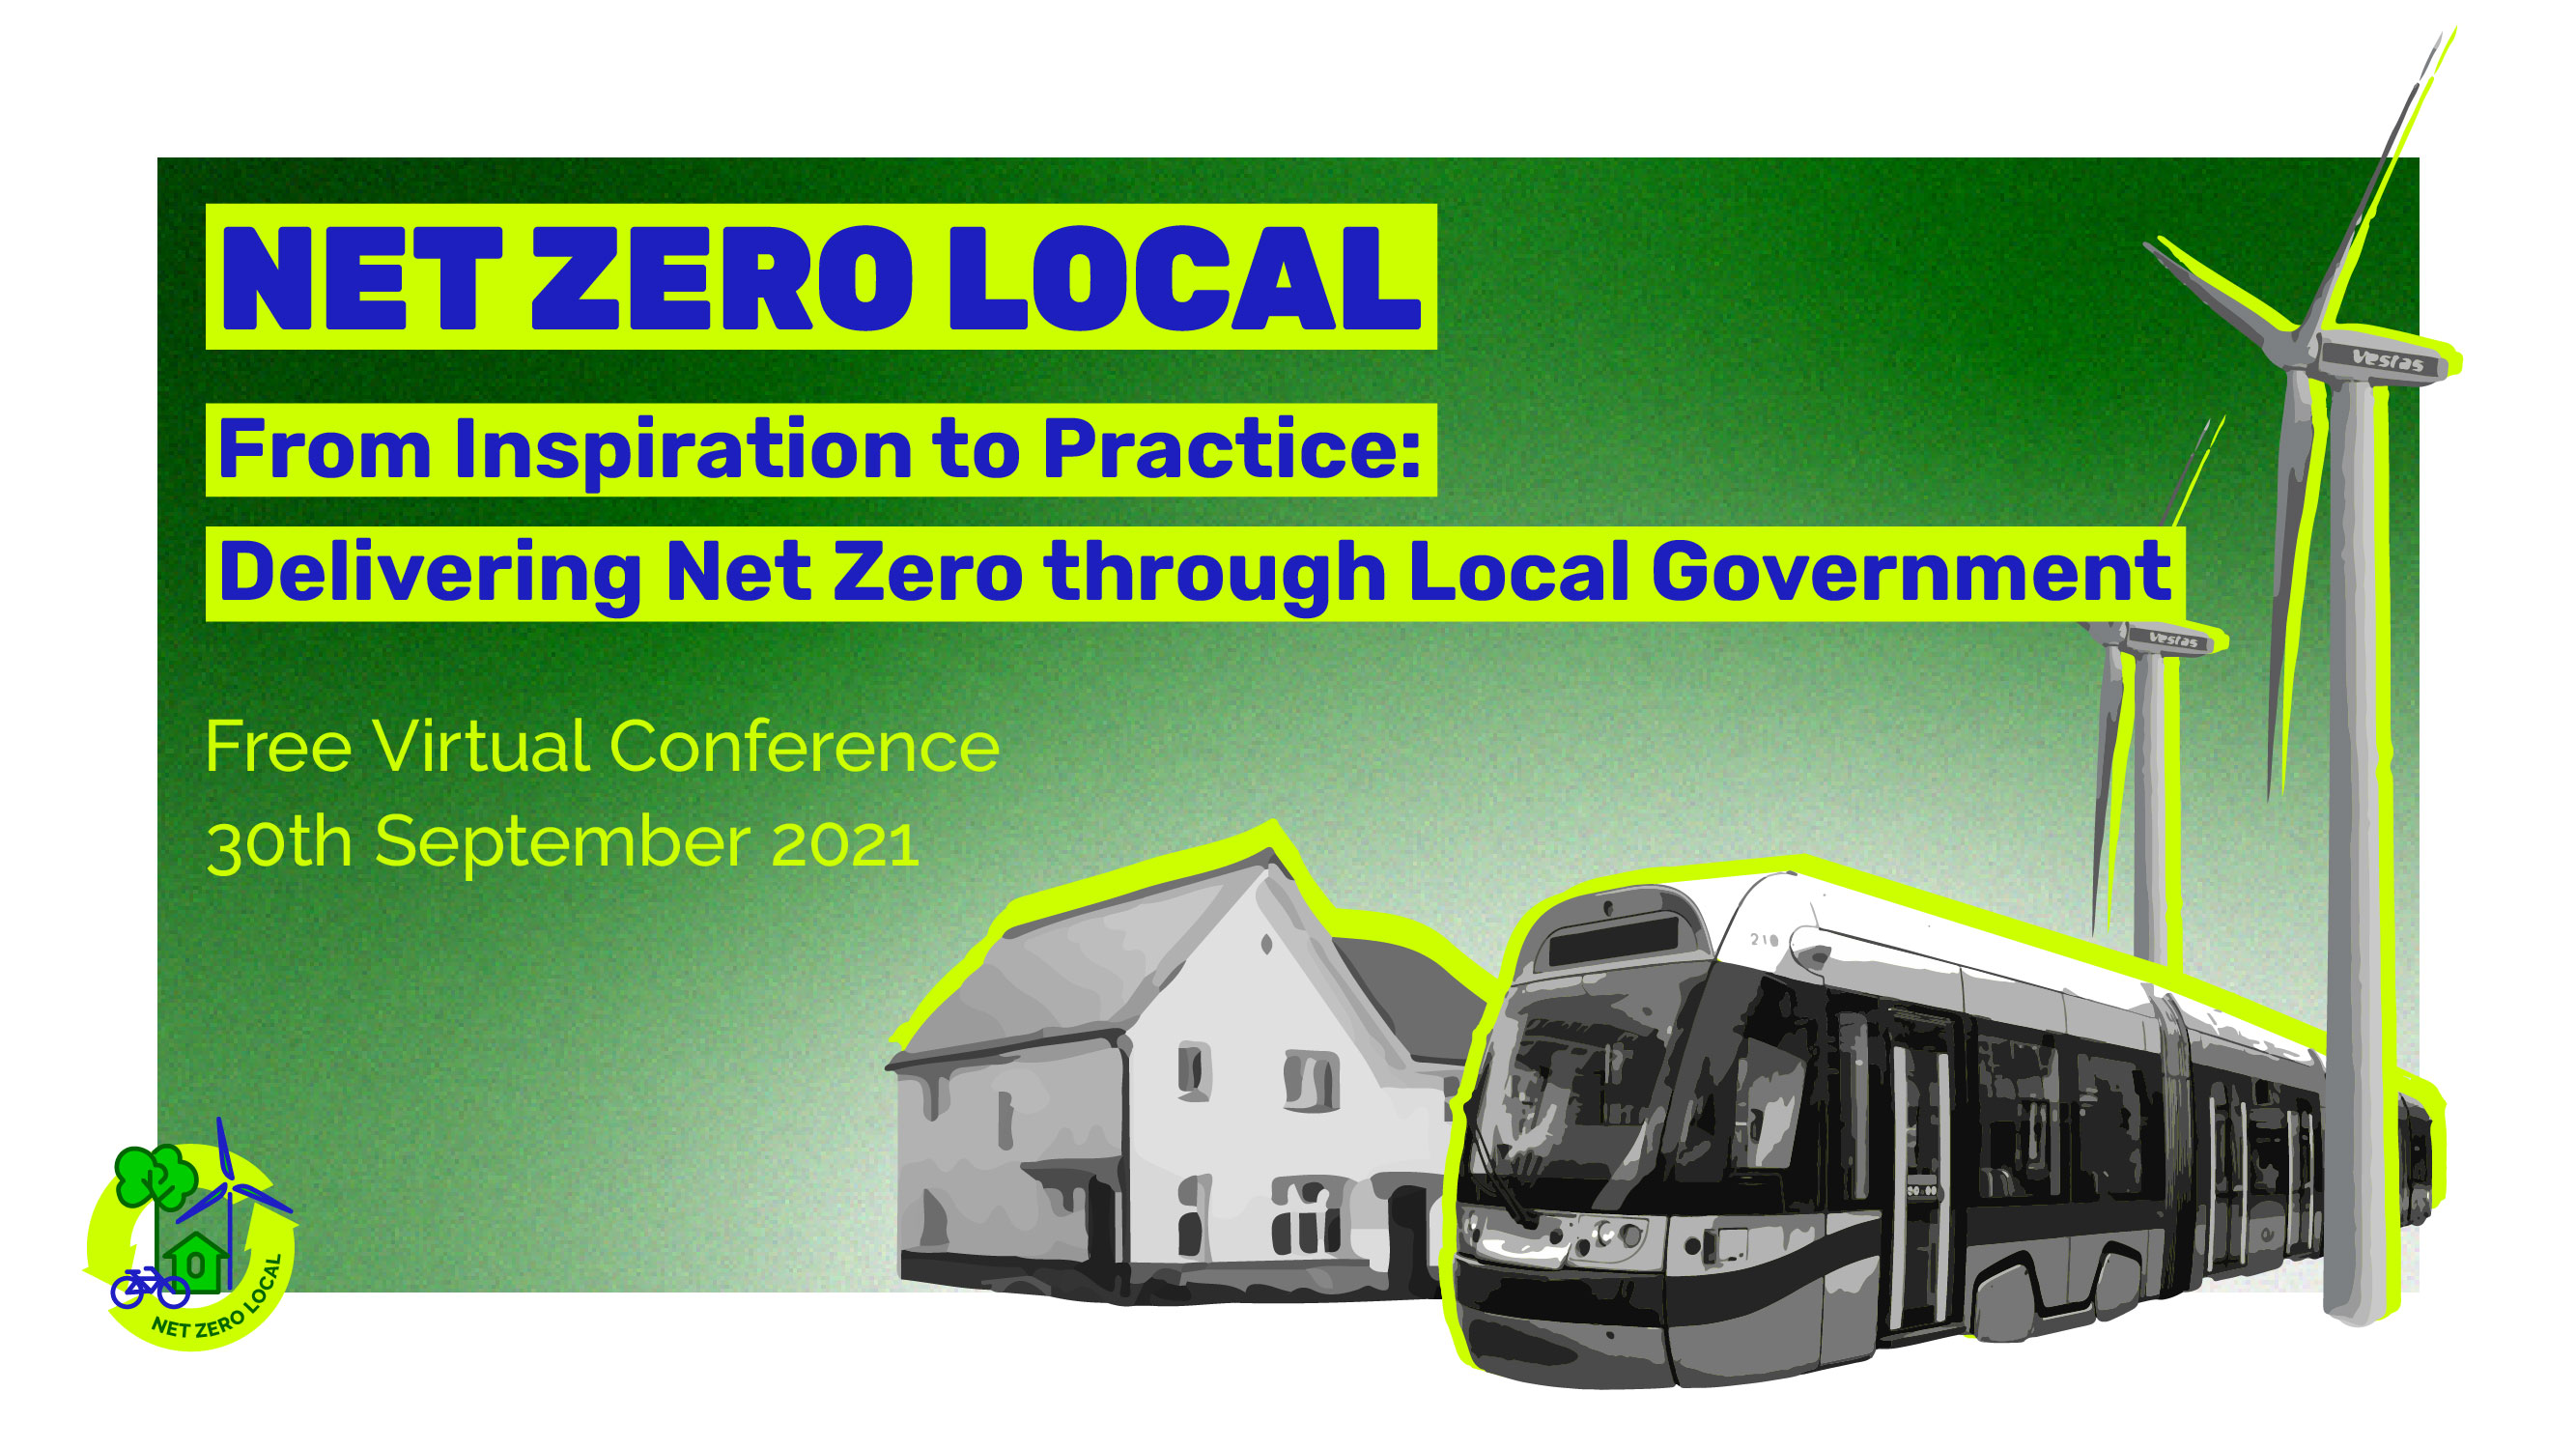 Net Zero Local Free Virtual Conference runs 30 September. Image shows wind turbines and an electric bus